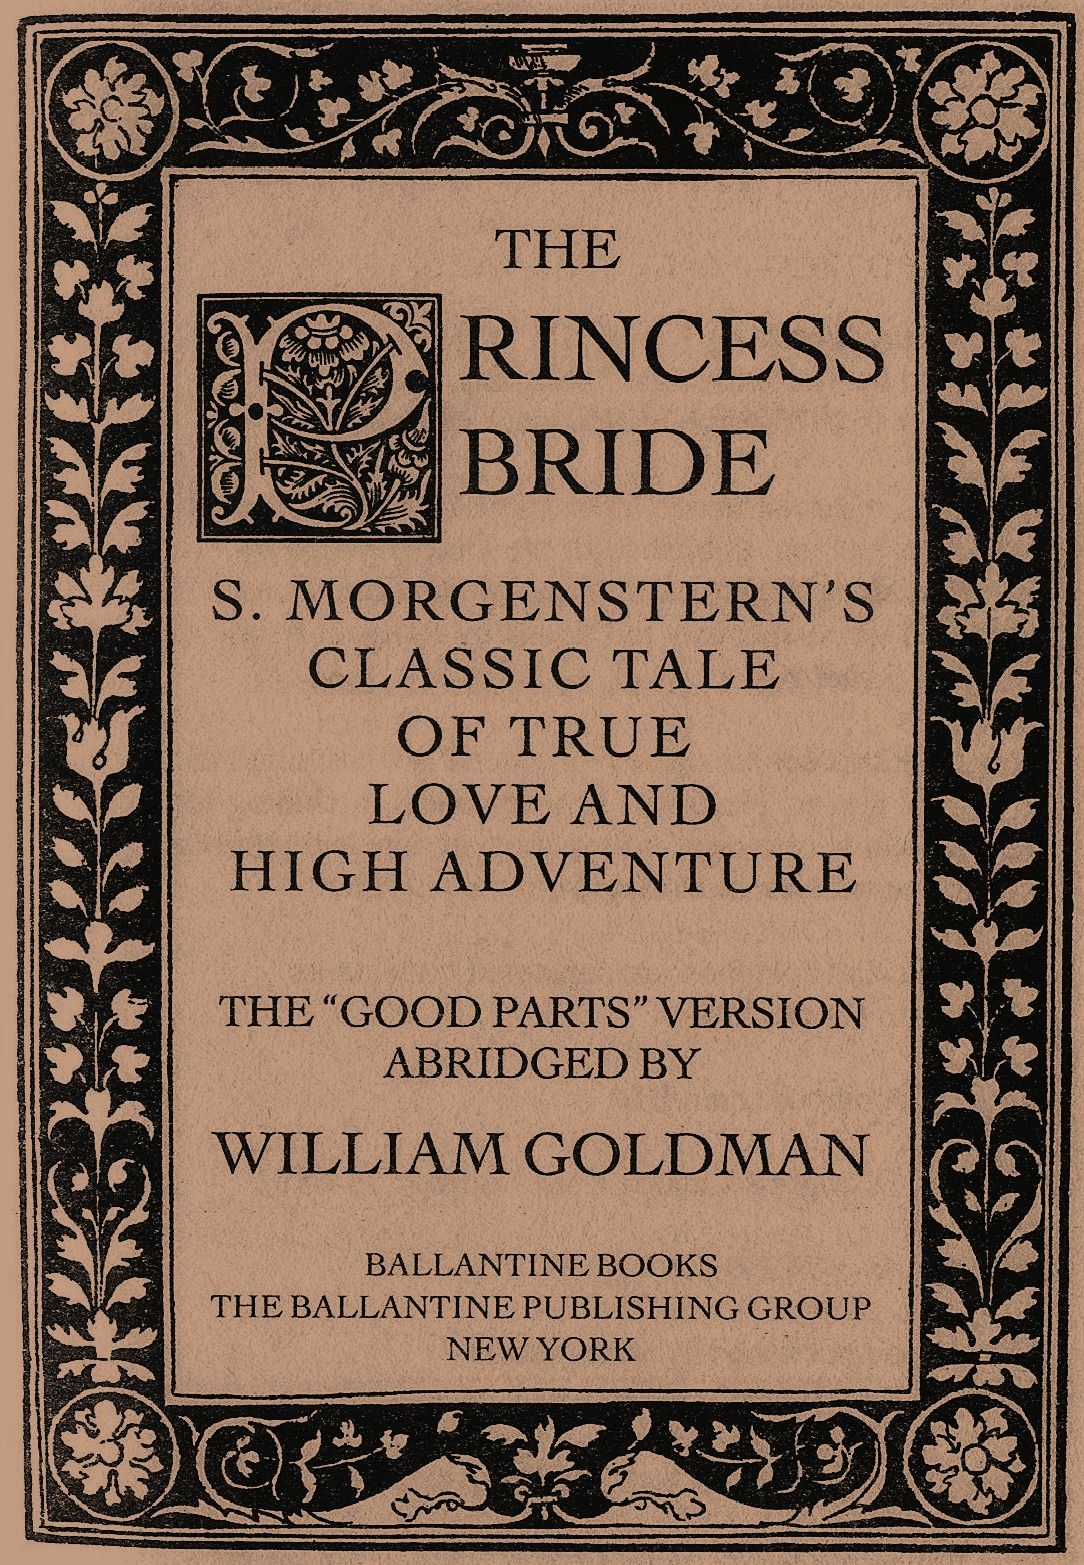 a review of the book princess bride The princess bride: s morgenstern's classic tale of true love and high adventure mass market paperback – oct 1 2007  this is my review of the princess bride the book not the original.